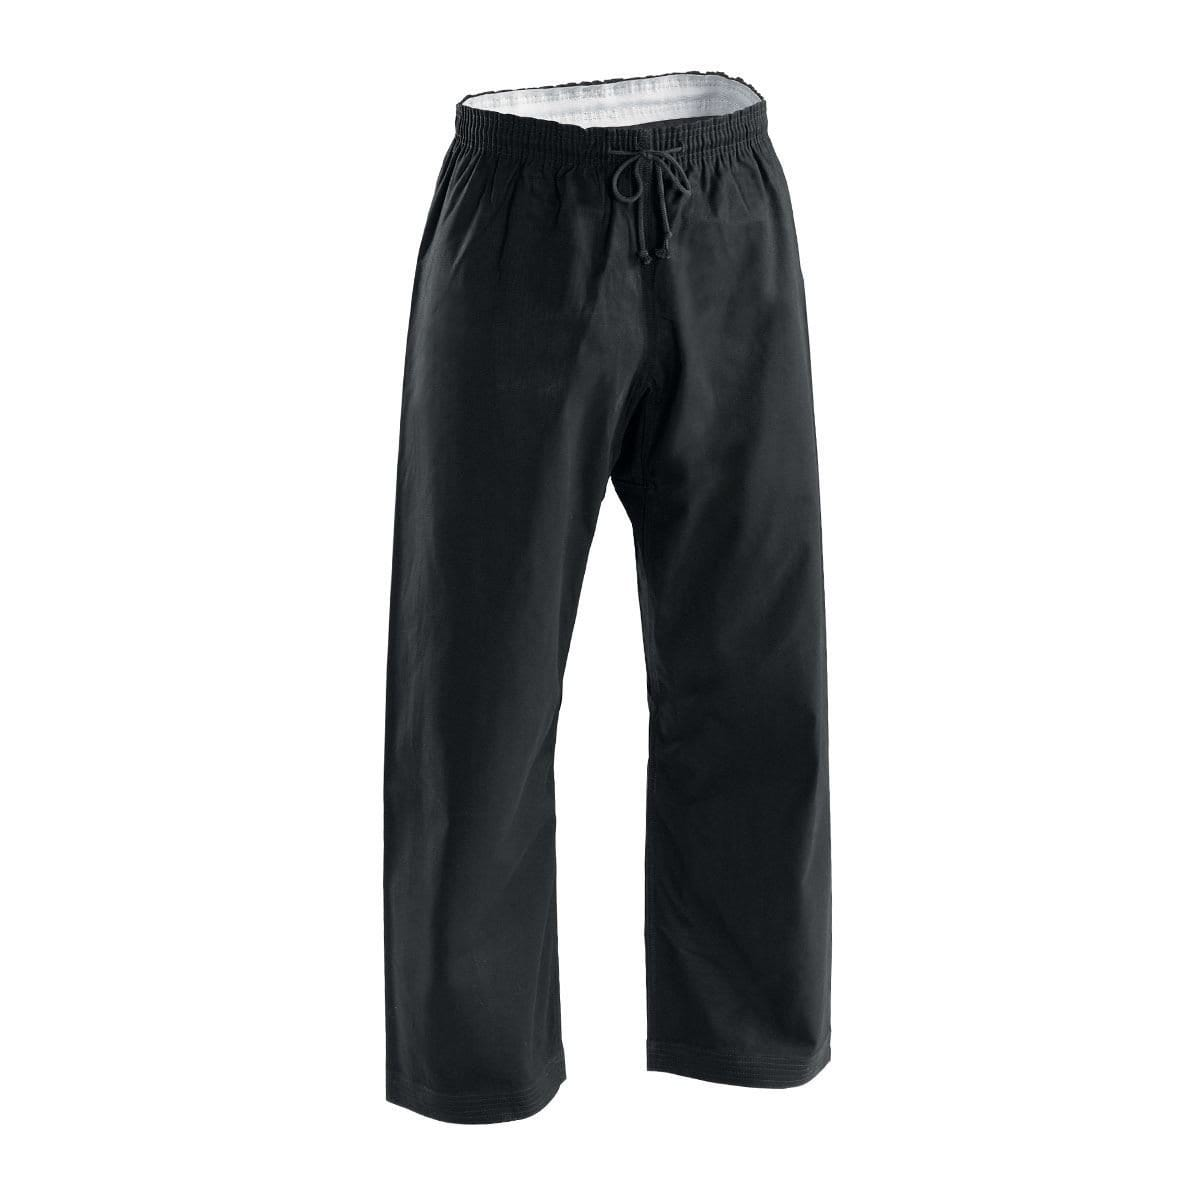 Century 10 oz Middleweight Brushed Cotton Elastic Waist Pants c03391 - BlackBeltShop